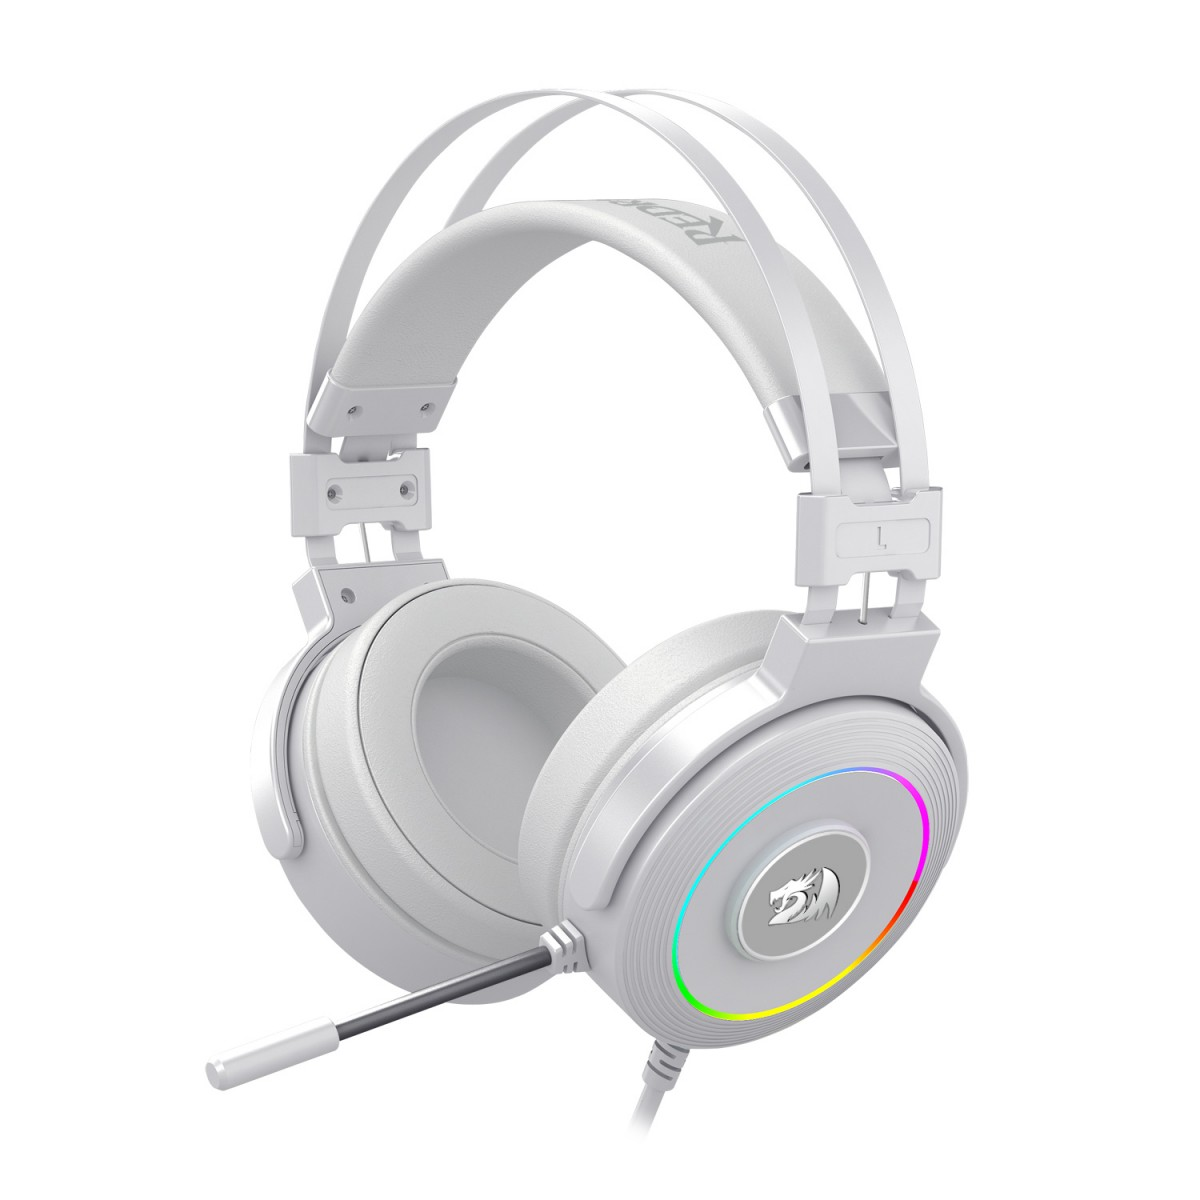 Headset Redragon Lamia 2 Branco Lunar White RGB Surround 7.1 H320W-RGB